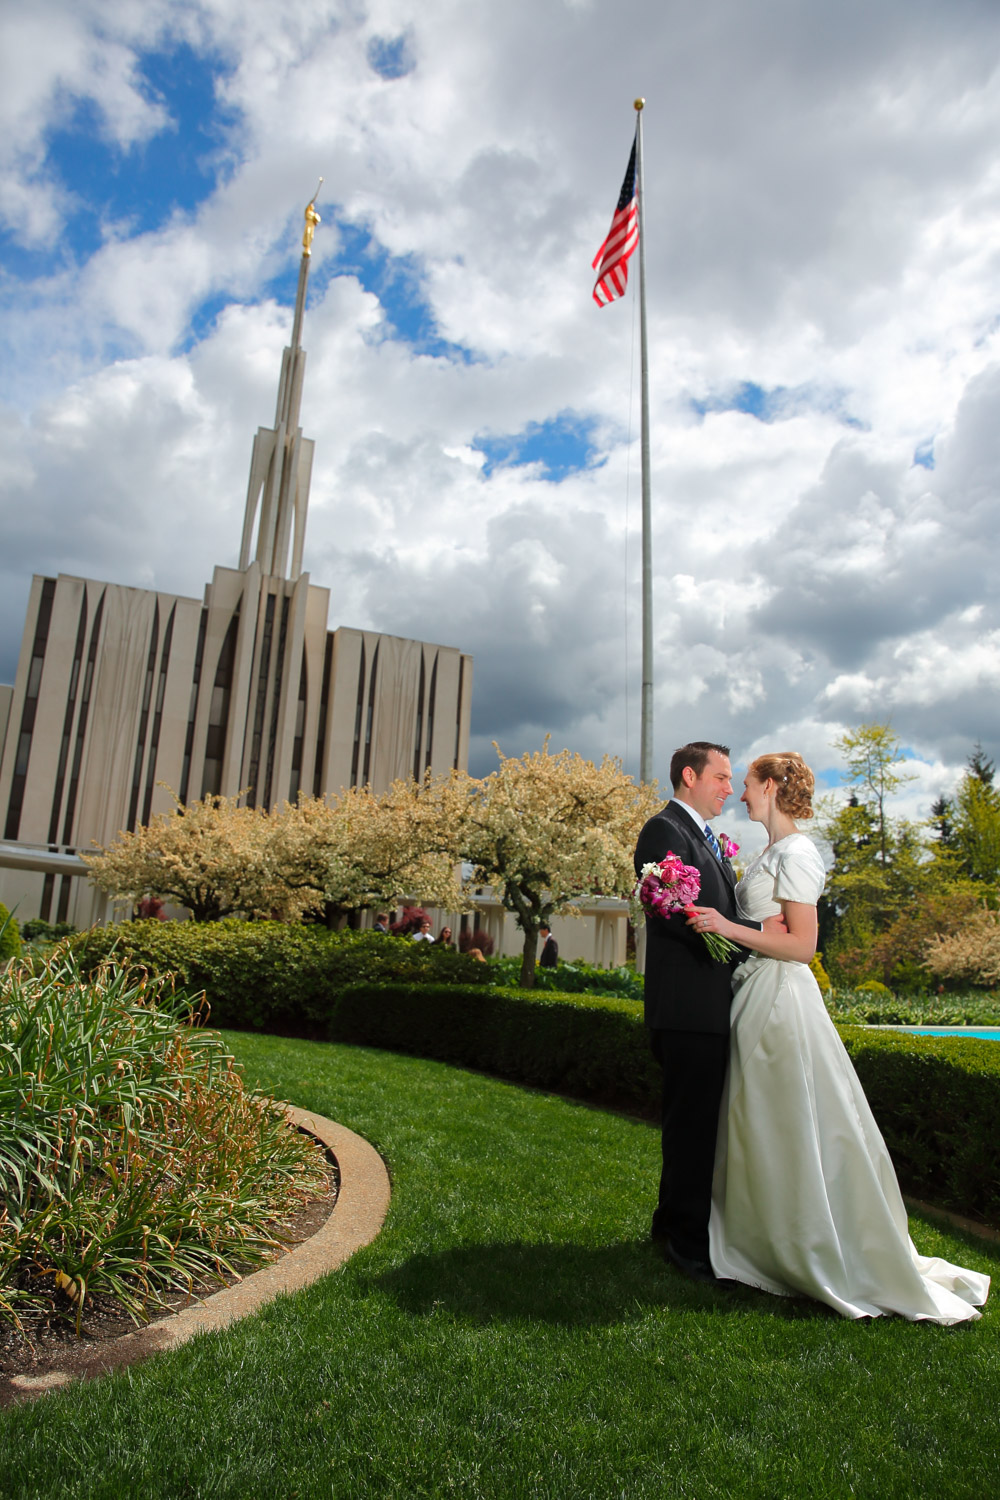 Wedding Photos LDS Temple Bellevue Washington25.jpg